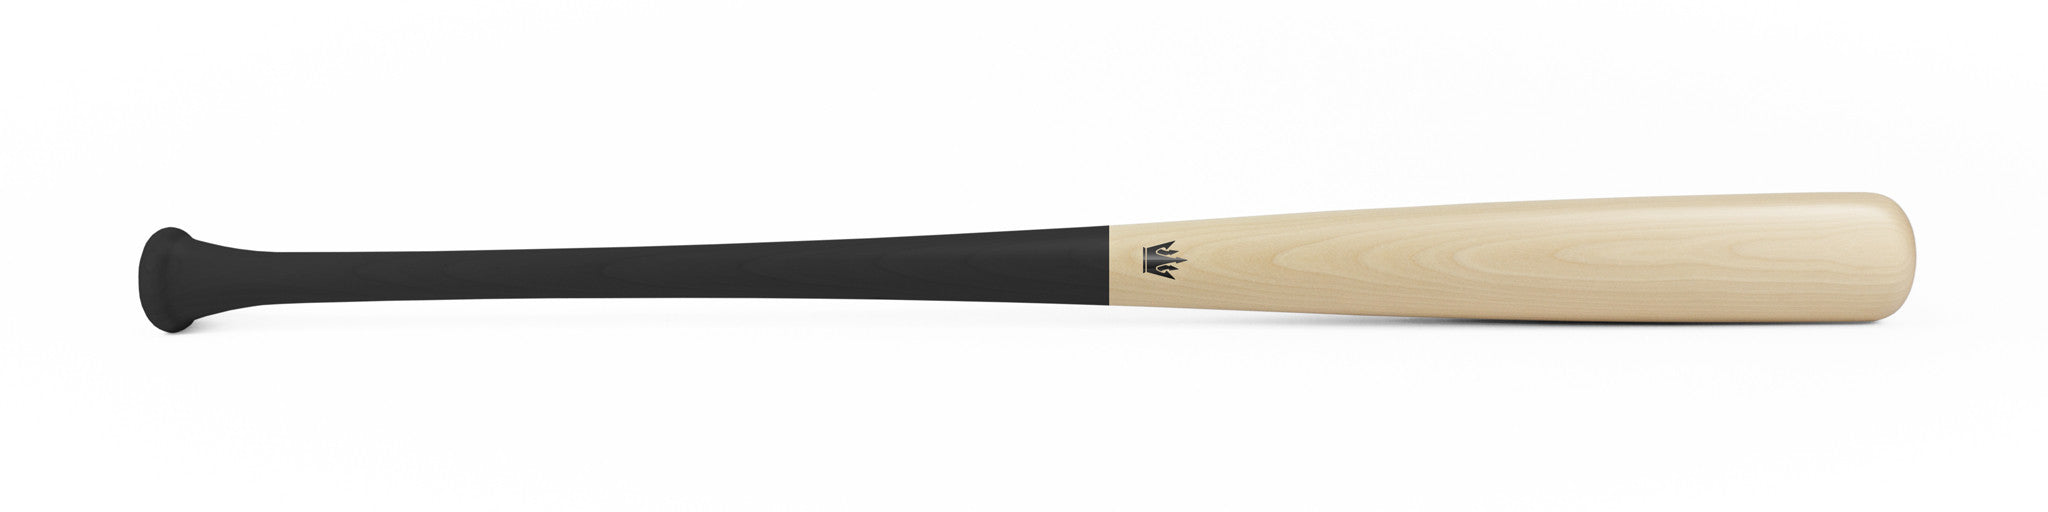 Wood bat - Maple model 271 Black Dip - 5